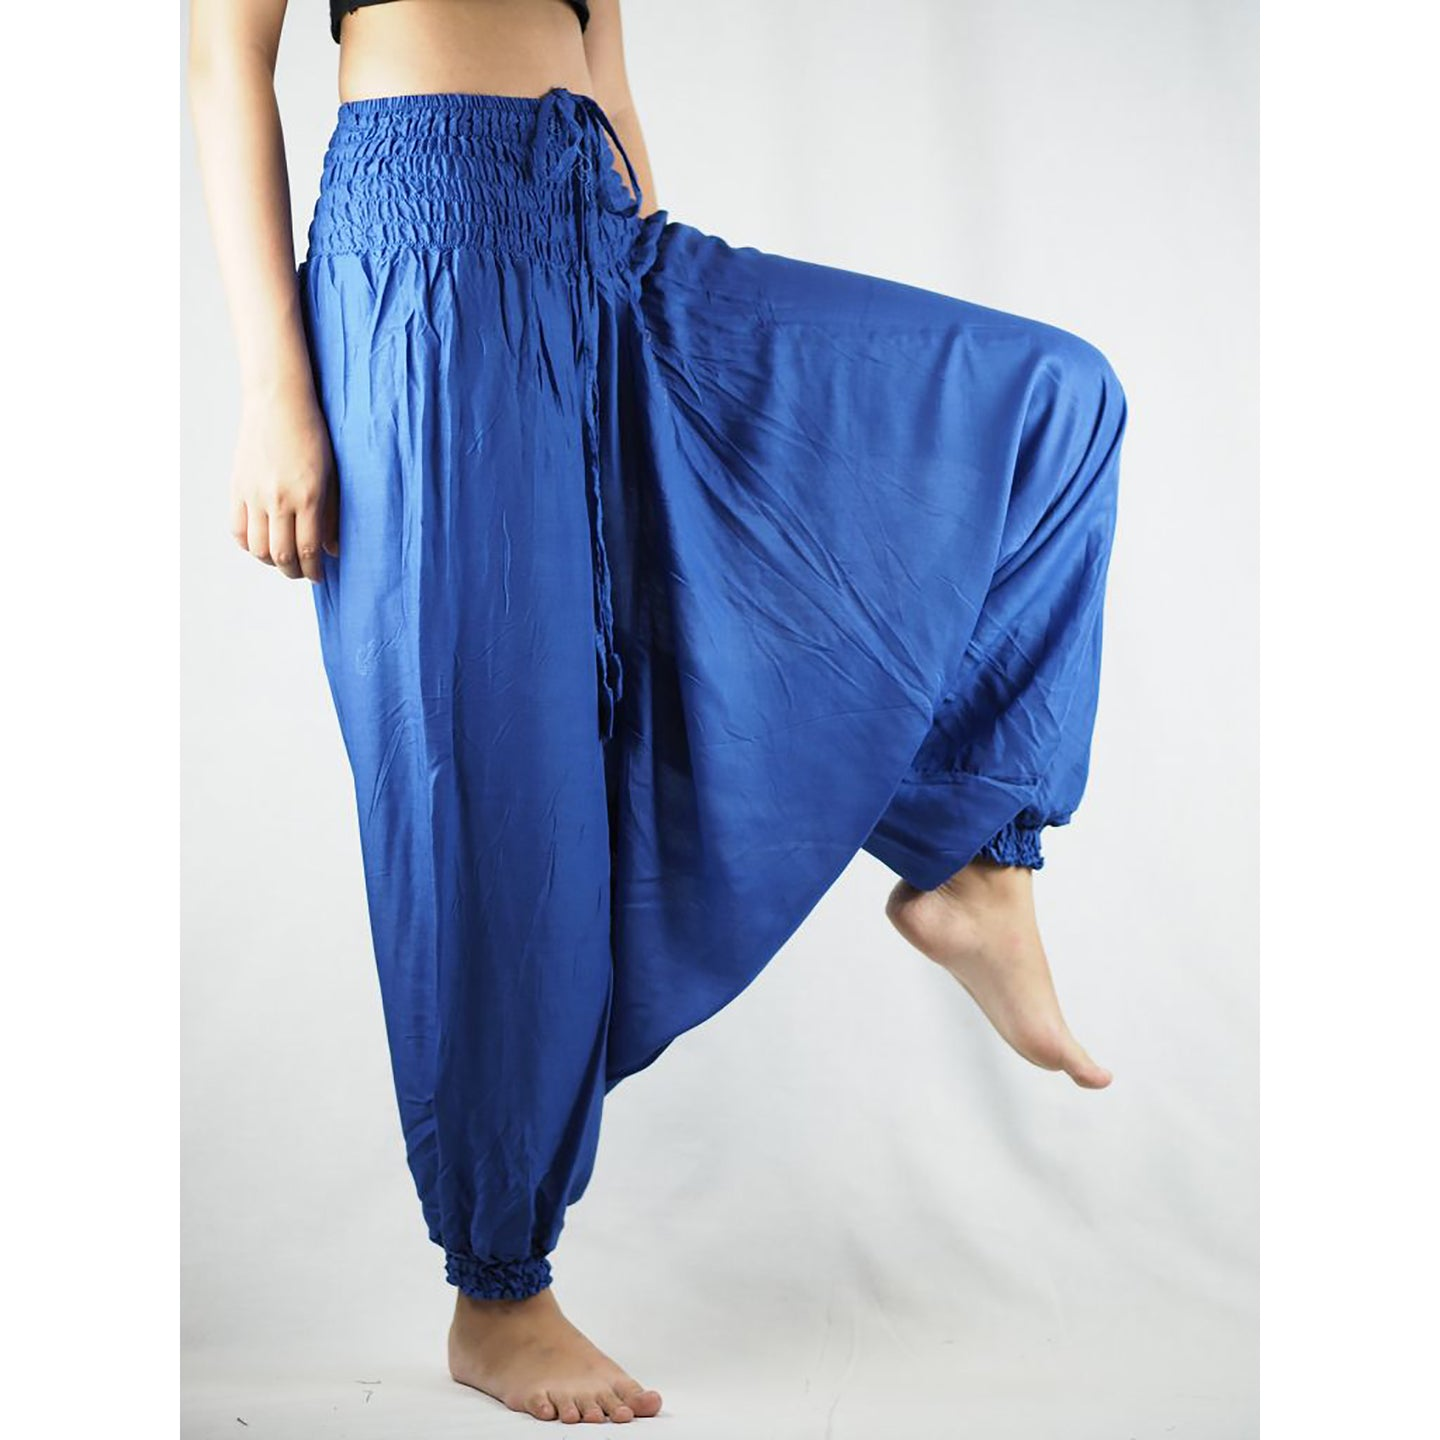 Solid color Unisex Aladdin drop crotch pants in Royal Blue PP0056 020000 02